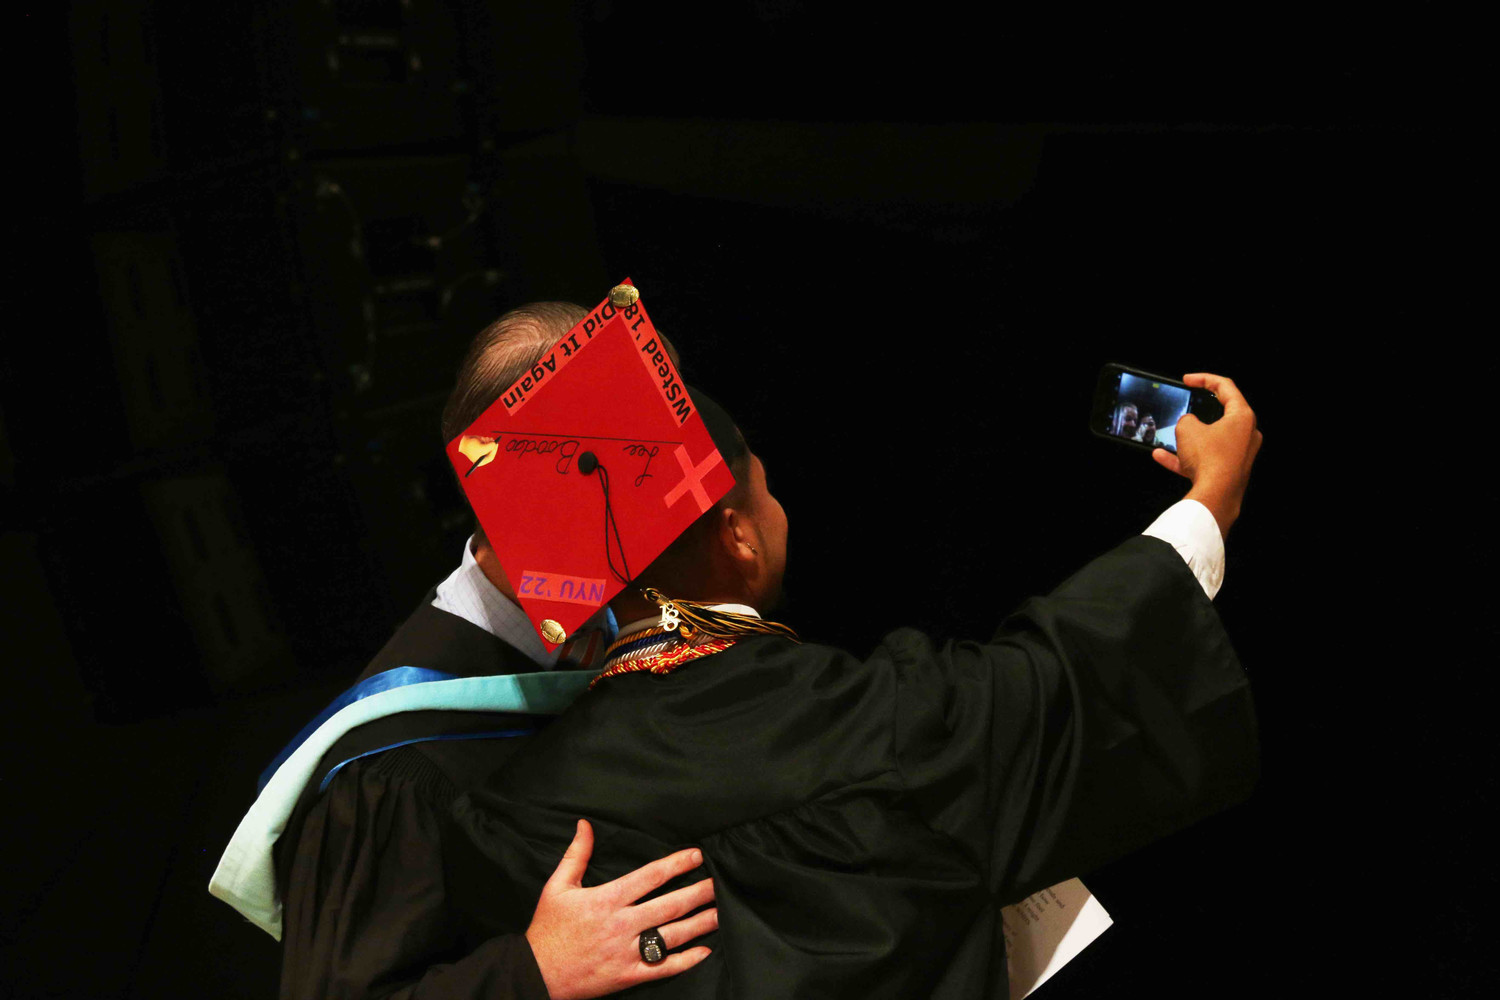 Students also took selfies at the graduation ceremony.